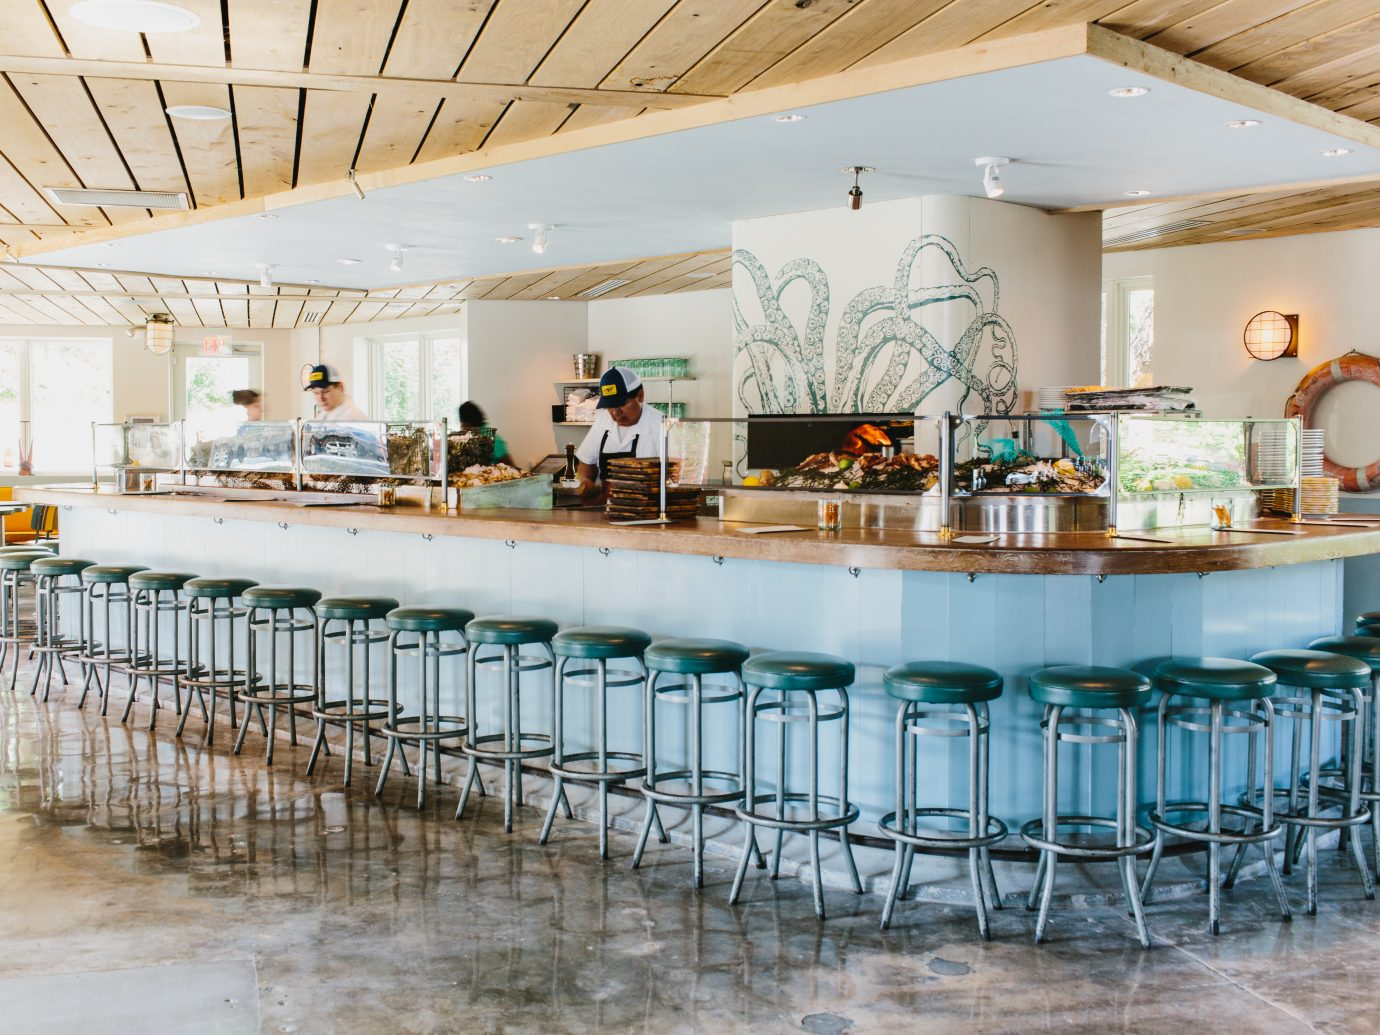 Raw bar with men working